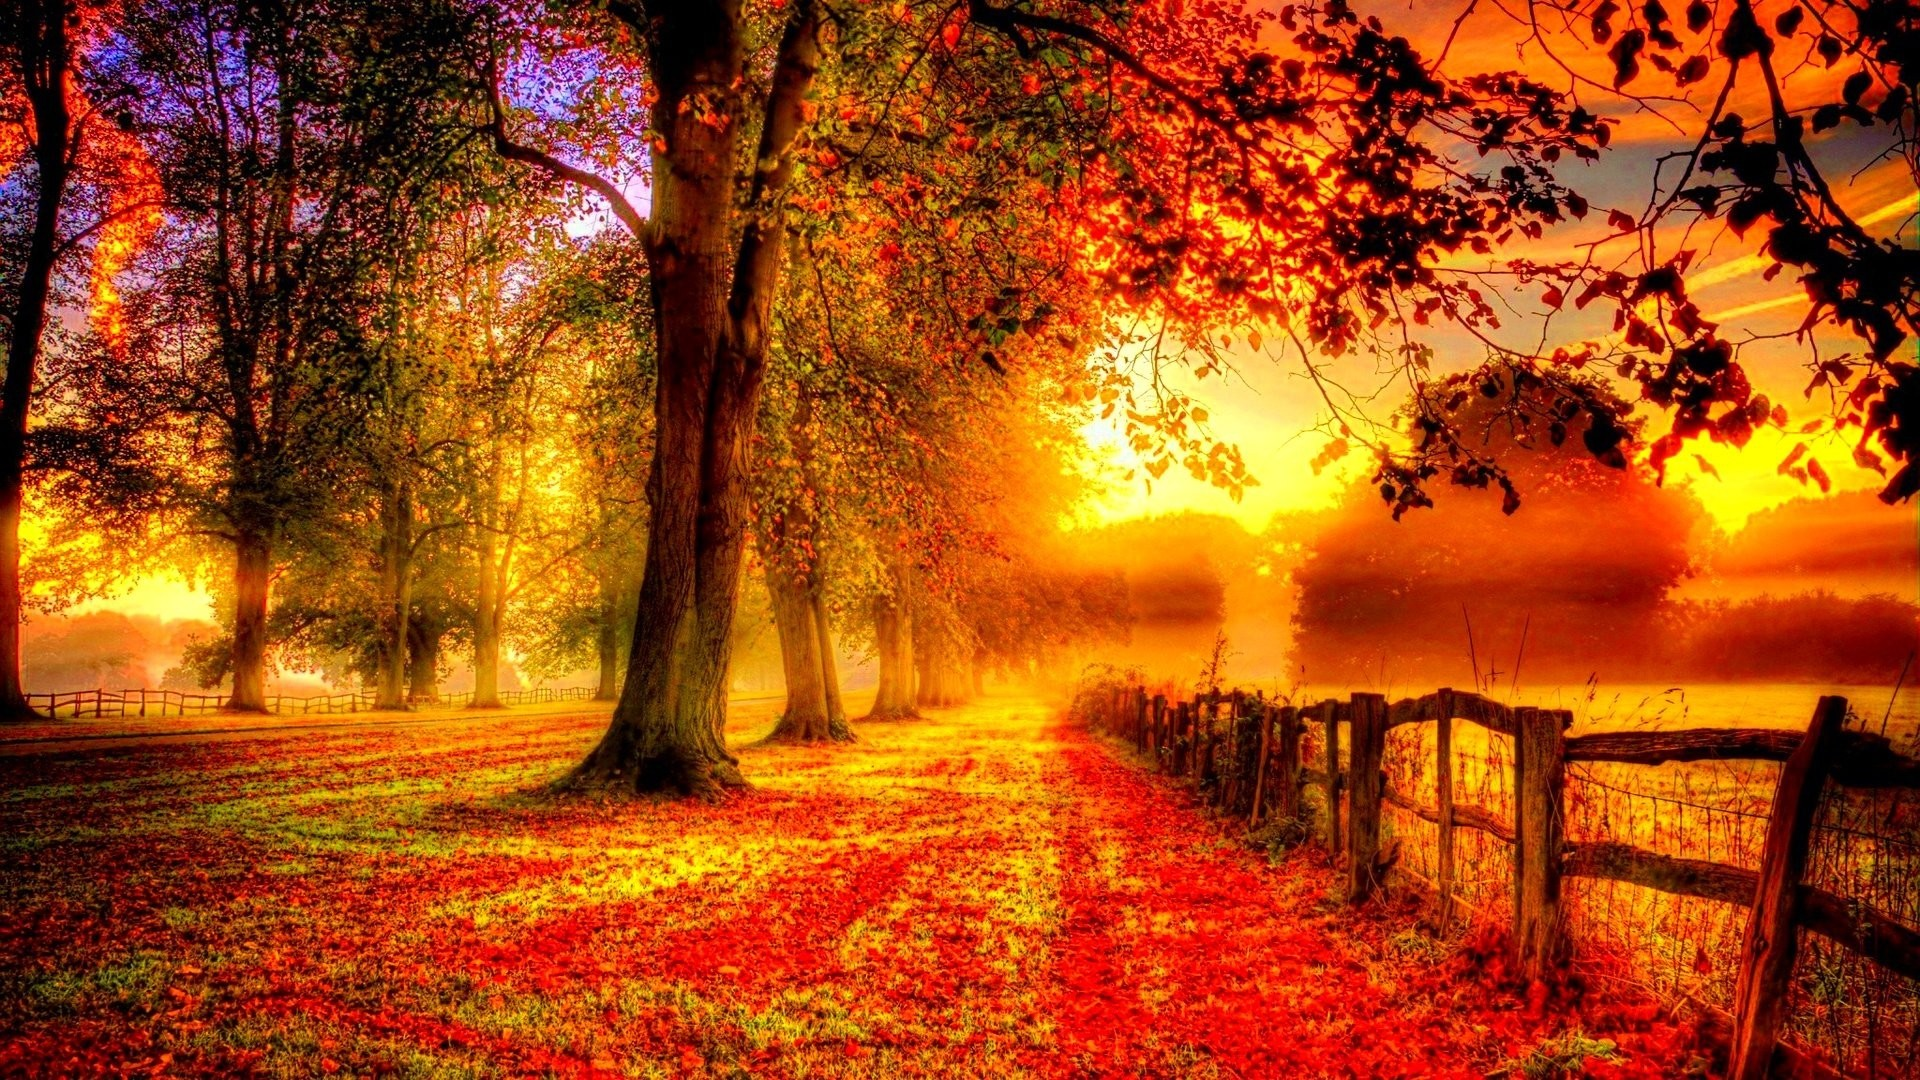 Trees – Forest Nature Landscape Tree Color Autumn Season Fall Wallpapers  For Ipad for HD 16